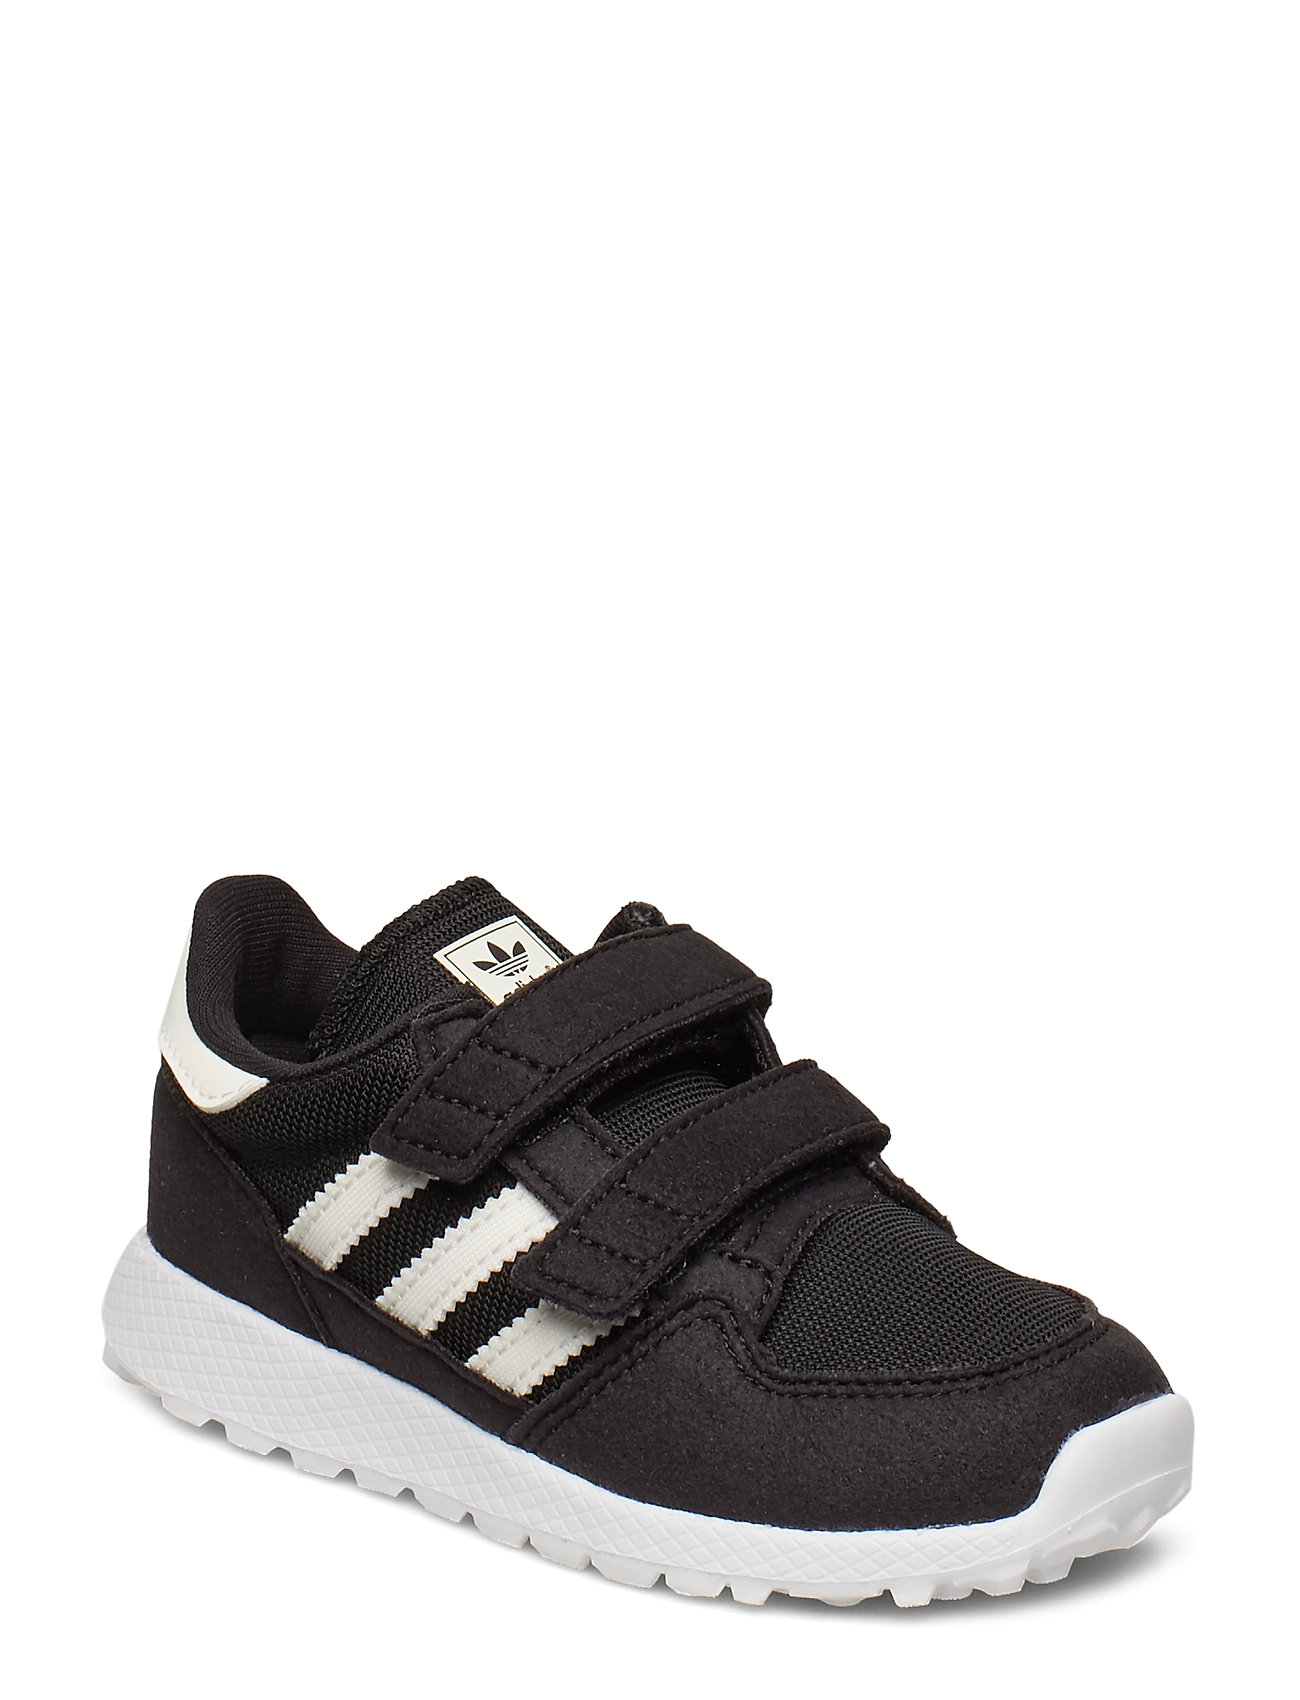 adidas Originals FOREST GROVE CF I - CBLACK/CLOWHI/CWHITE